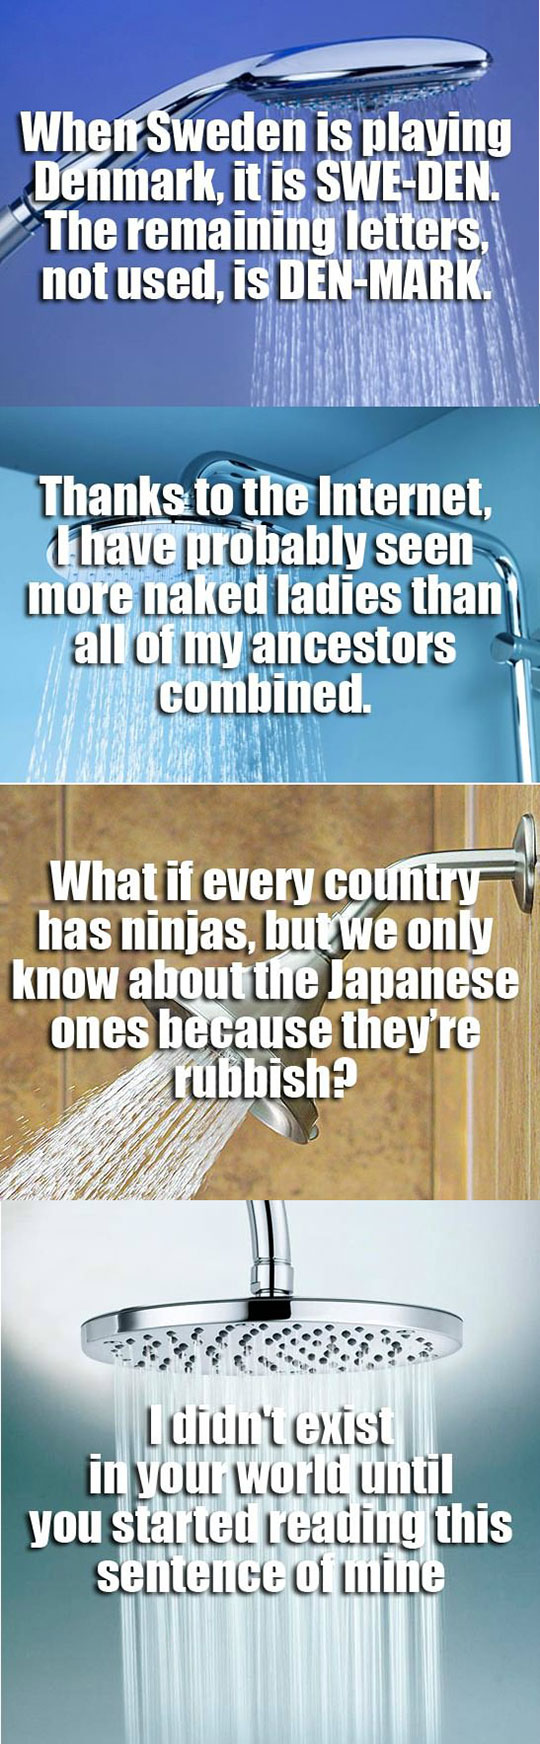 funny-shower-thoughts-Denmark-internet